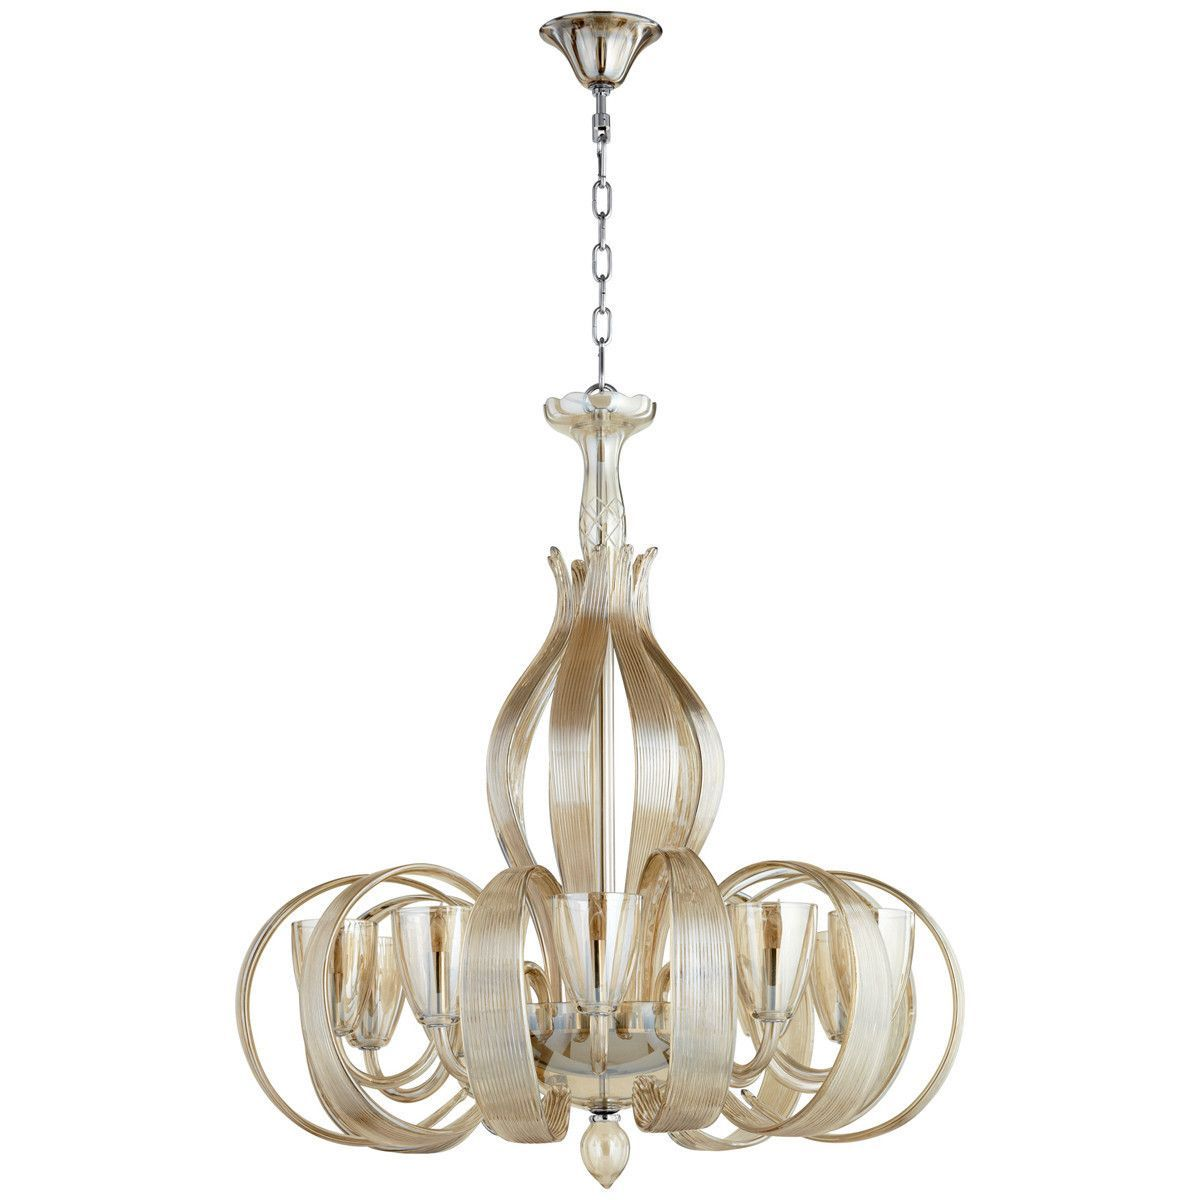 cyan design lucille 10 light chandelier - Cyan Canopy Interior